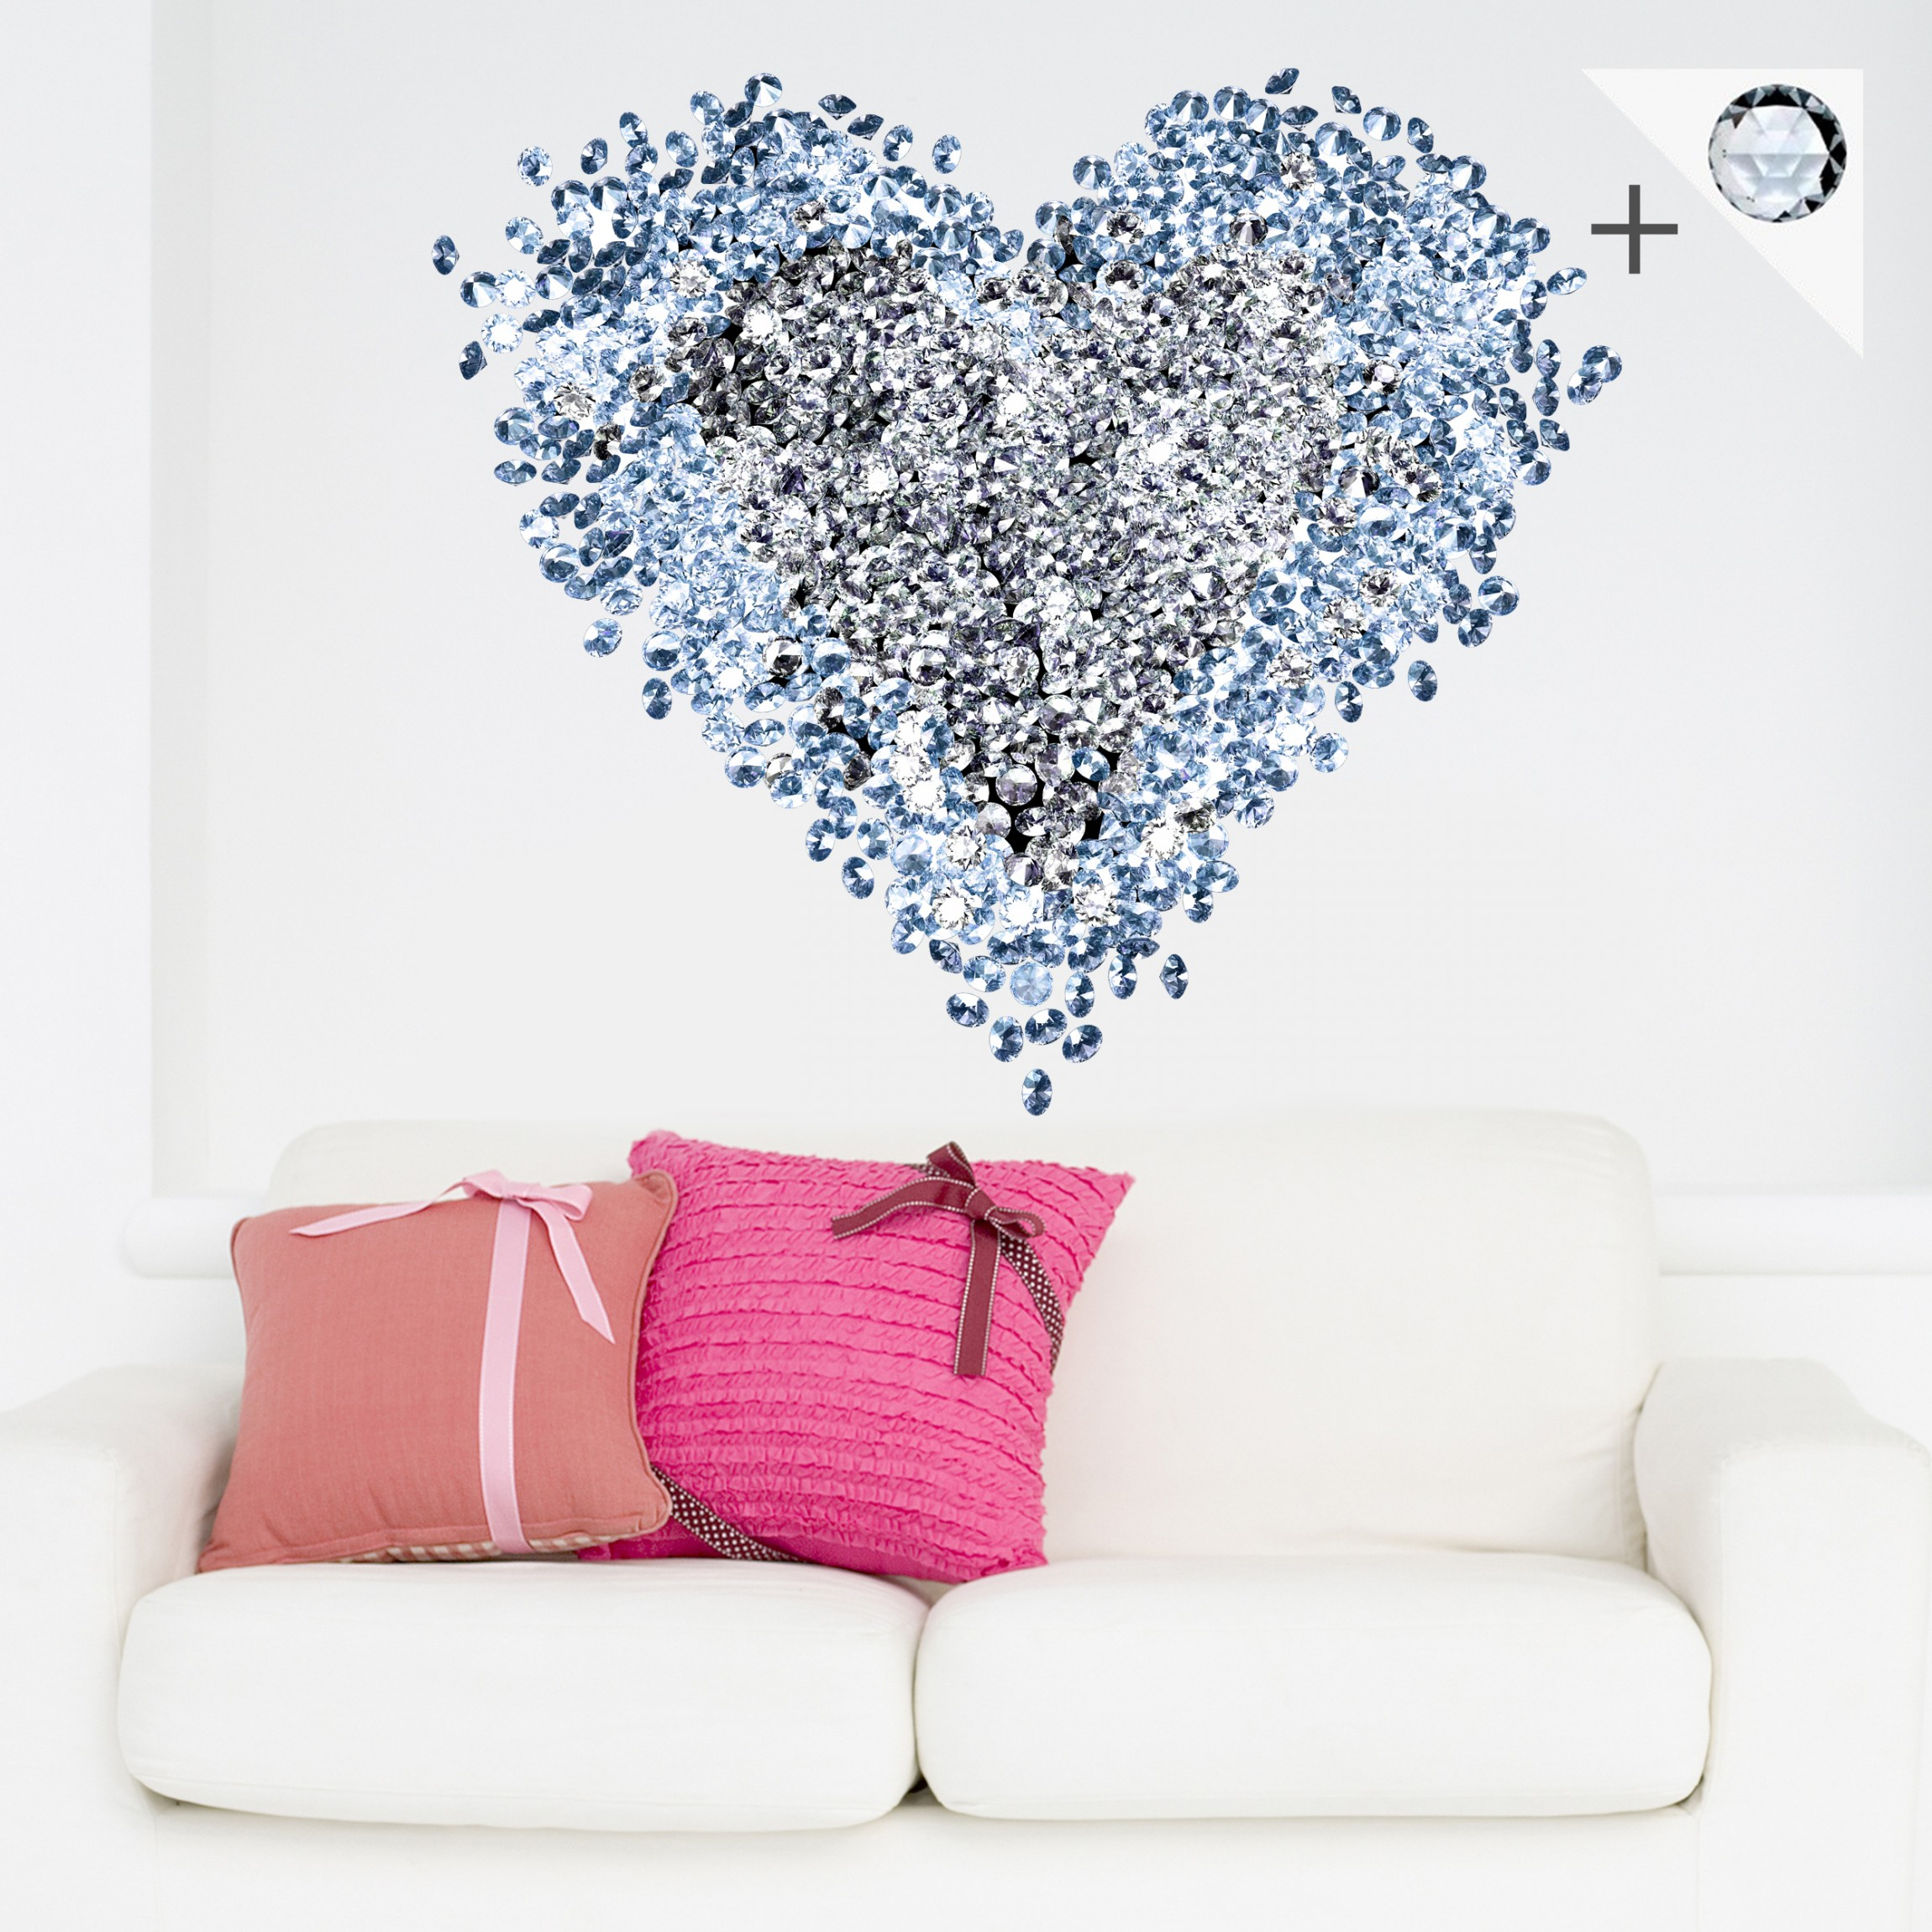 Adesivo Murale No 421 Diamond Heart 15 Crystallized